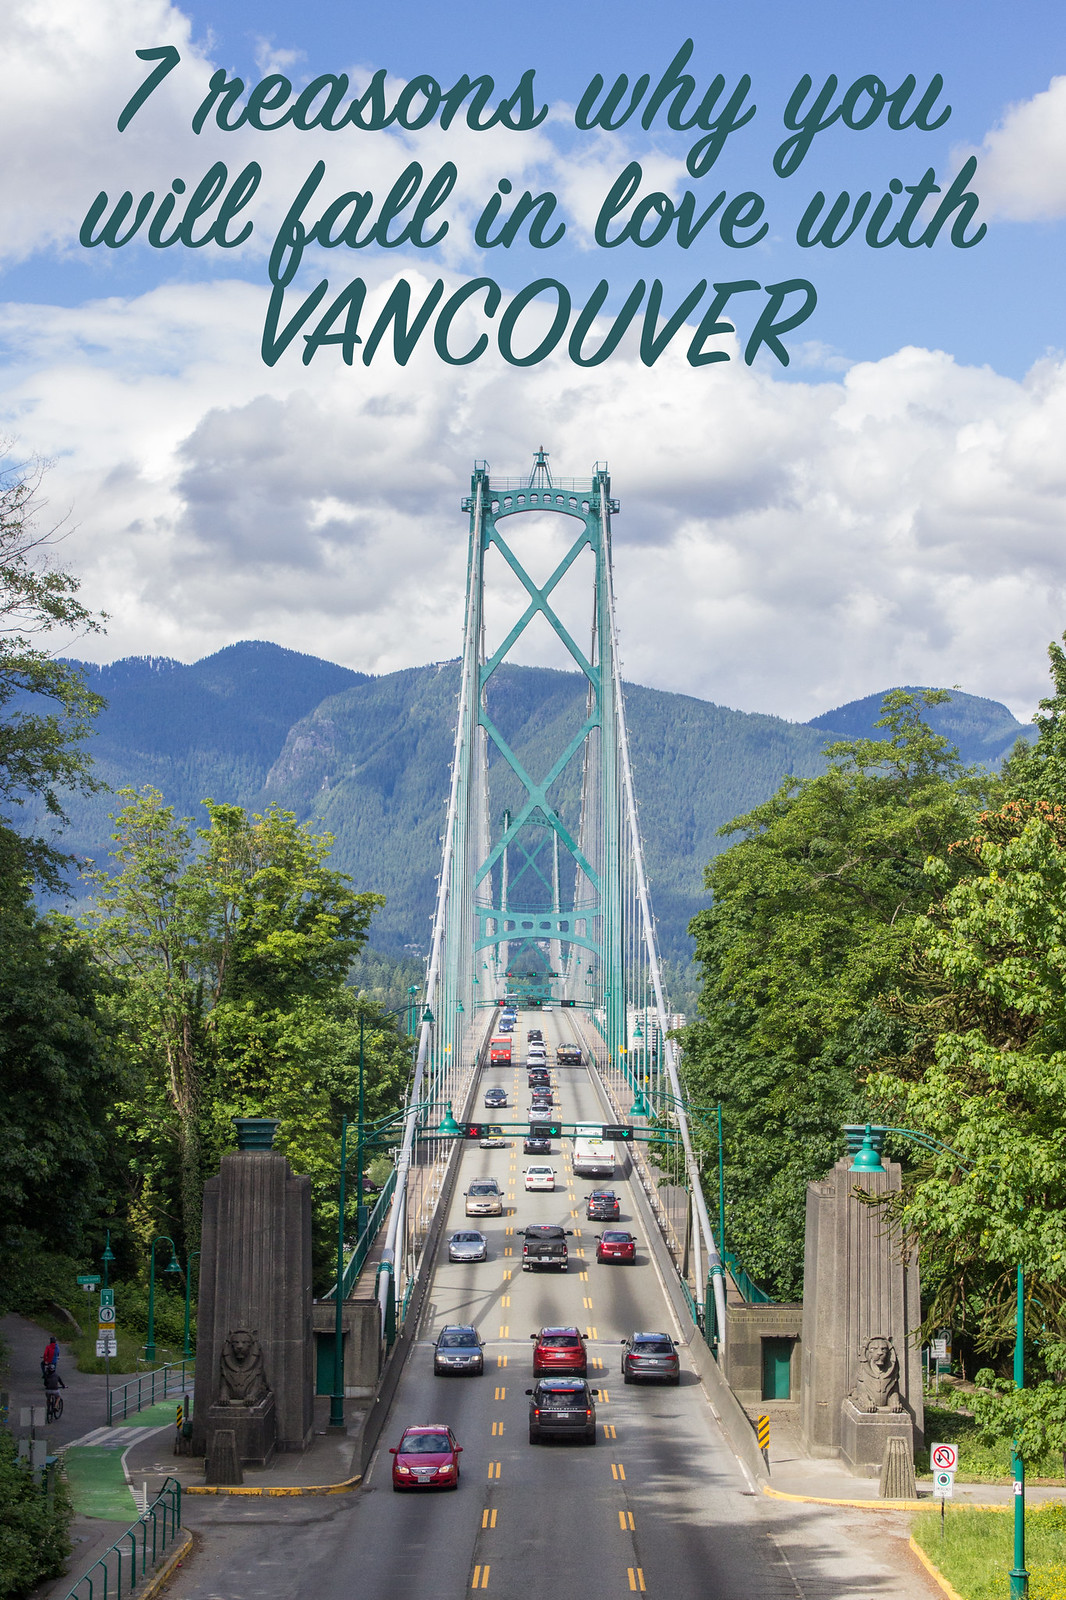 7 reasons why you'll fall in love with Vancouver